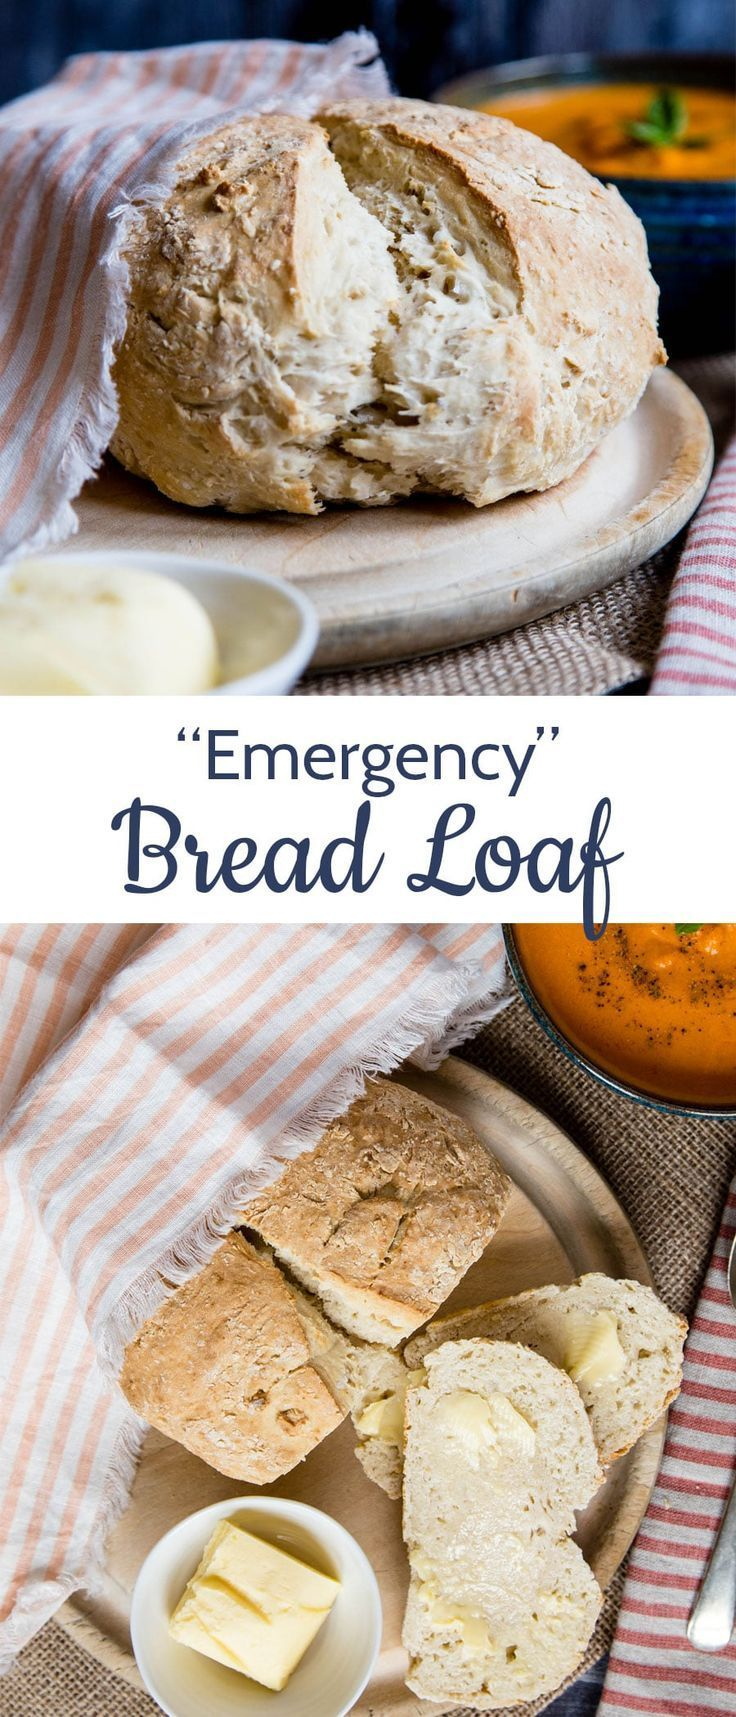 Emergency No Yeast Bread images